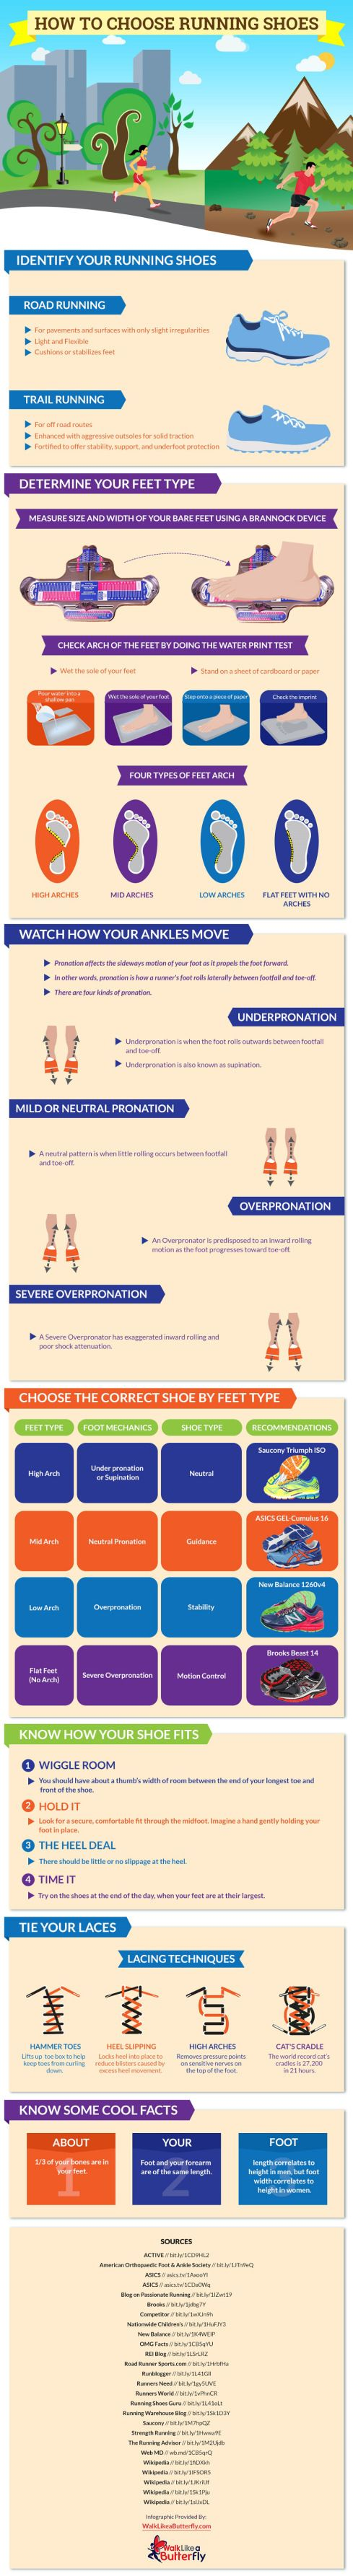 www.etsy.com/... Infographic: How to Choose Running Shoes